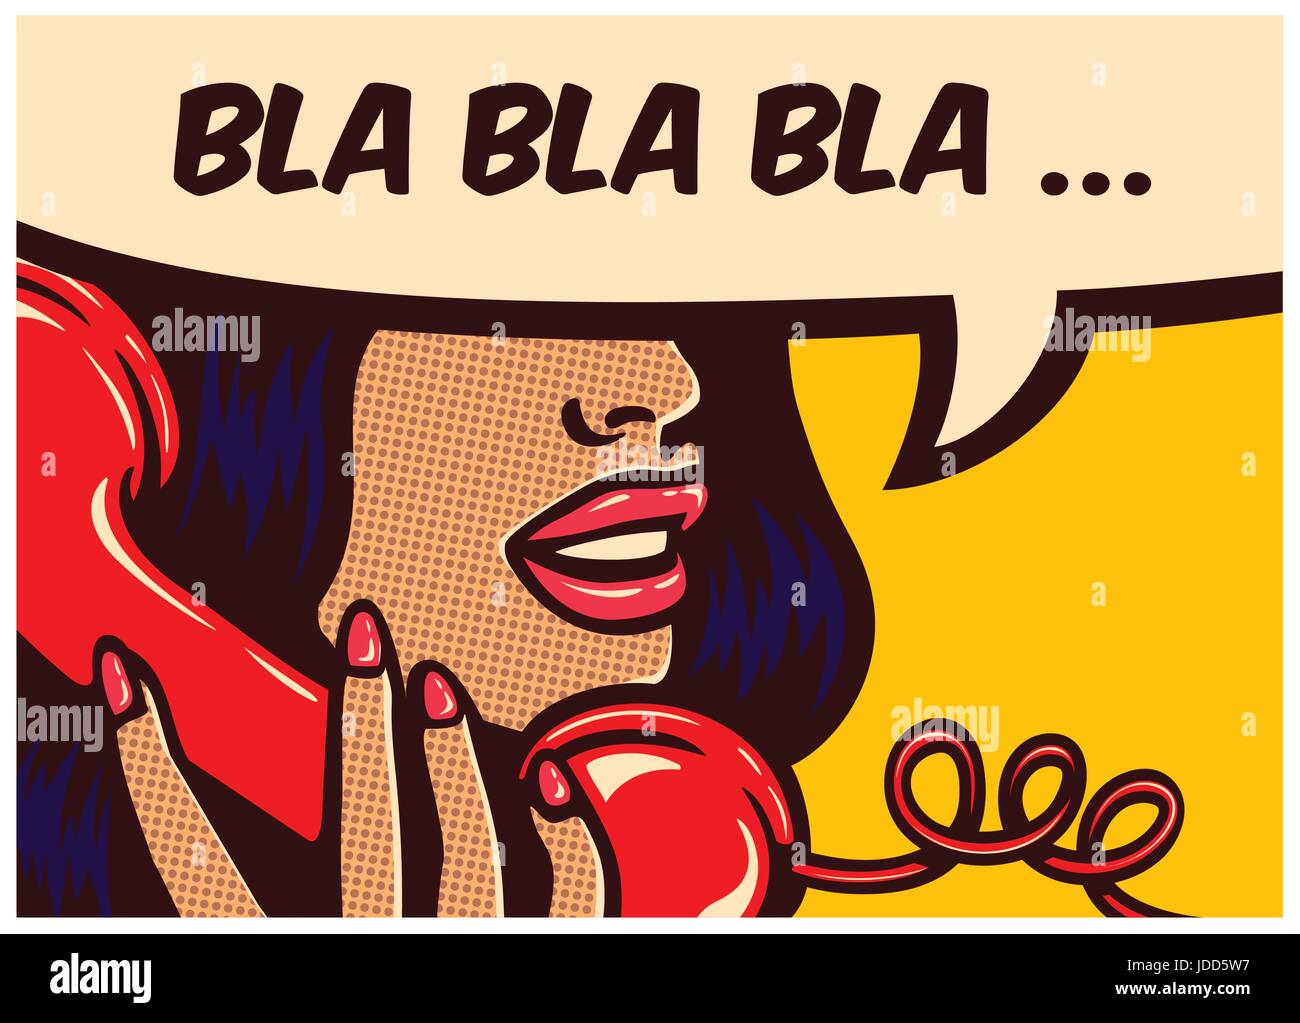 Pop art style comic book panel with girl talking nonsense bla bla on vintage phone gossip chatter in speech bubble - Stock Image